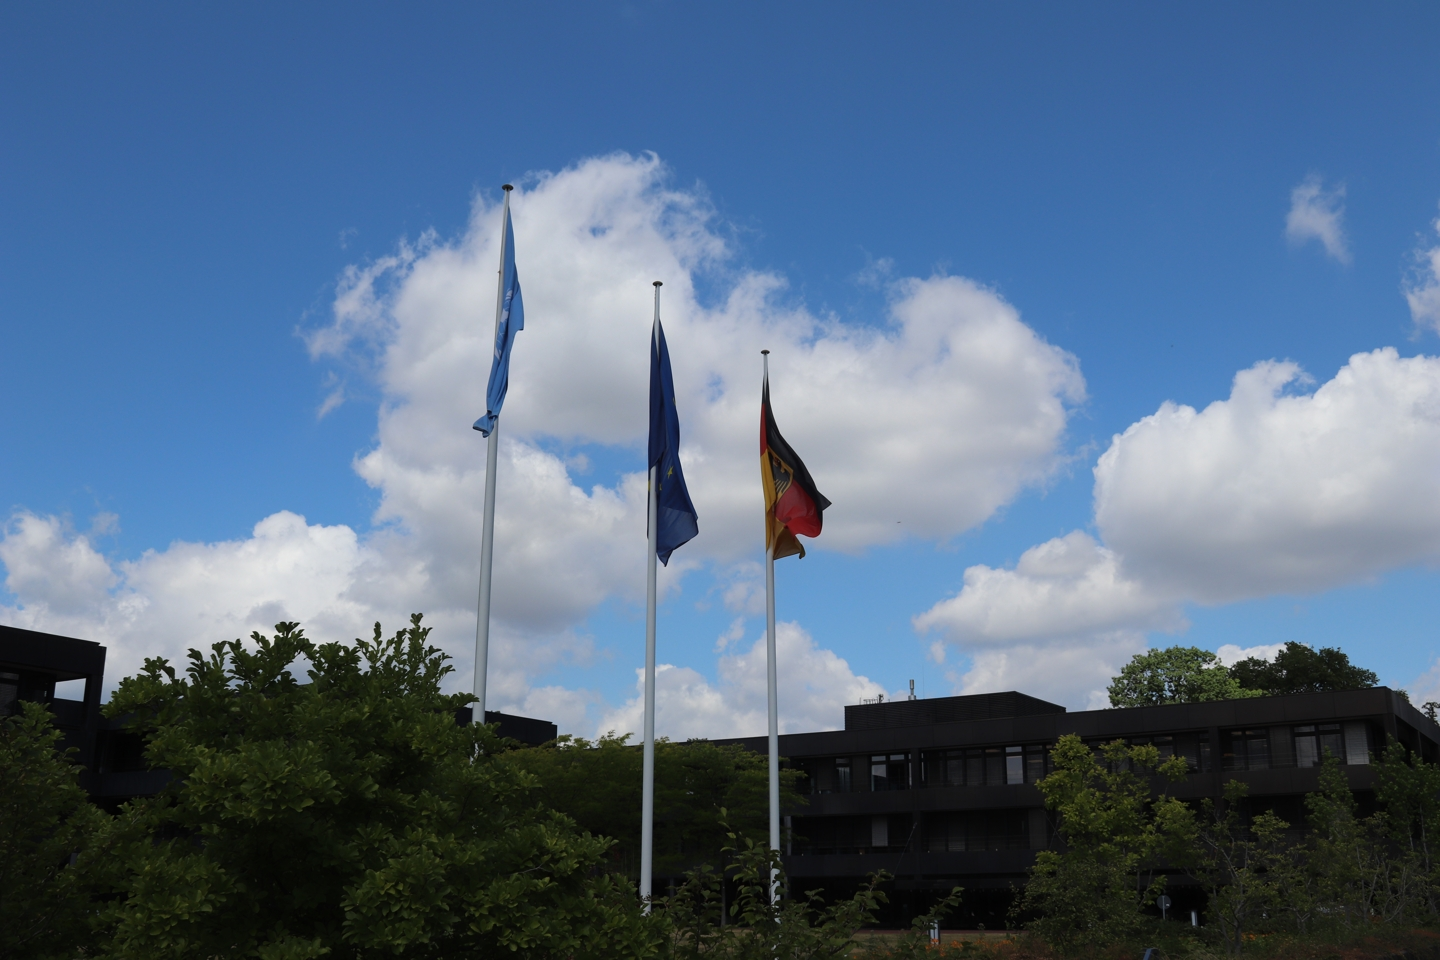 Three flagpoles. One with the german flag, one with the european flag and the last one is the flag of the united nations.